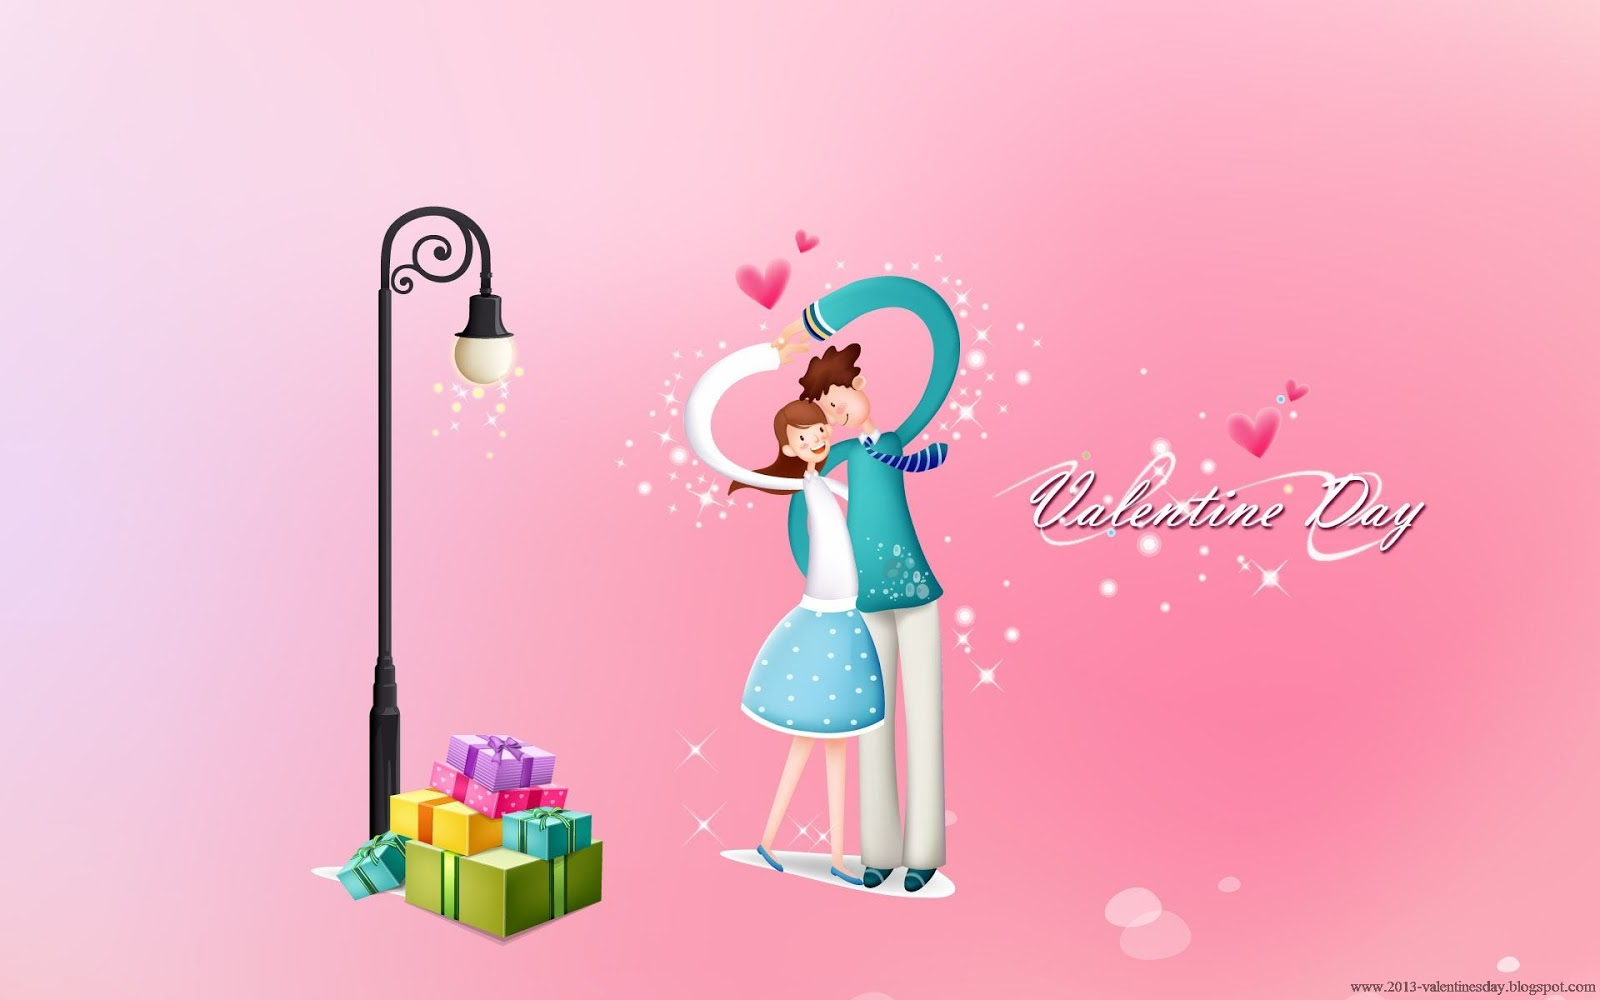 Love New cute cartoon Wallpaper : cute cartoon couple Love Hd wallpapers for Valentines day